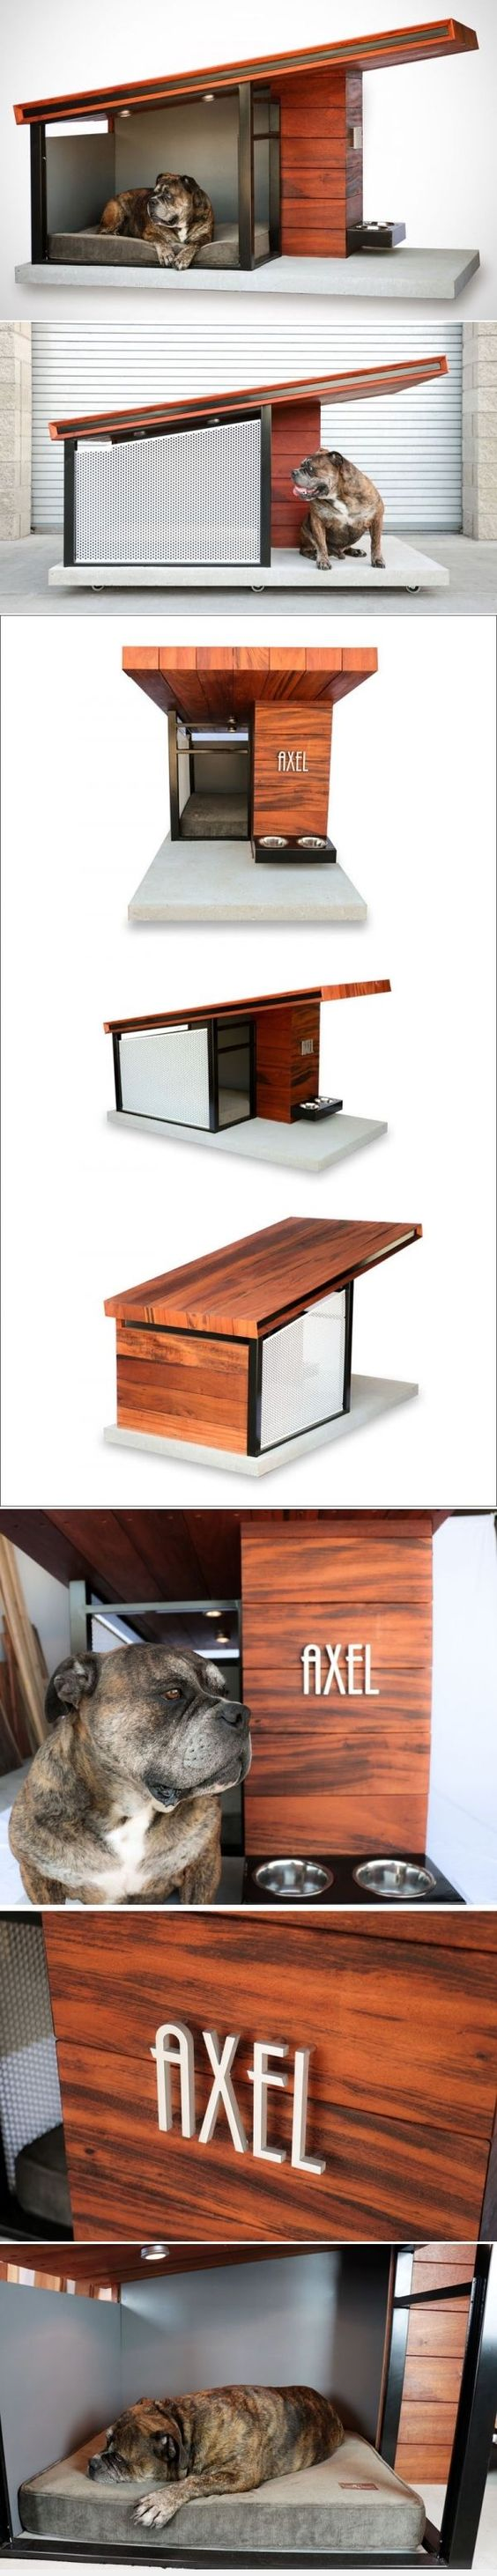 pinterest • the world's catalog of ideas - explore modern dog houses small modern house and more